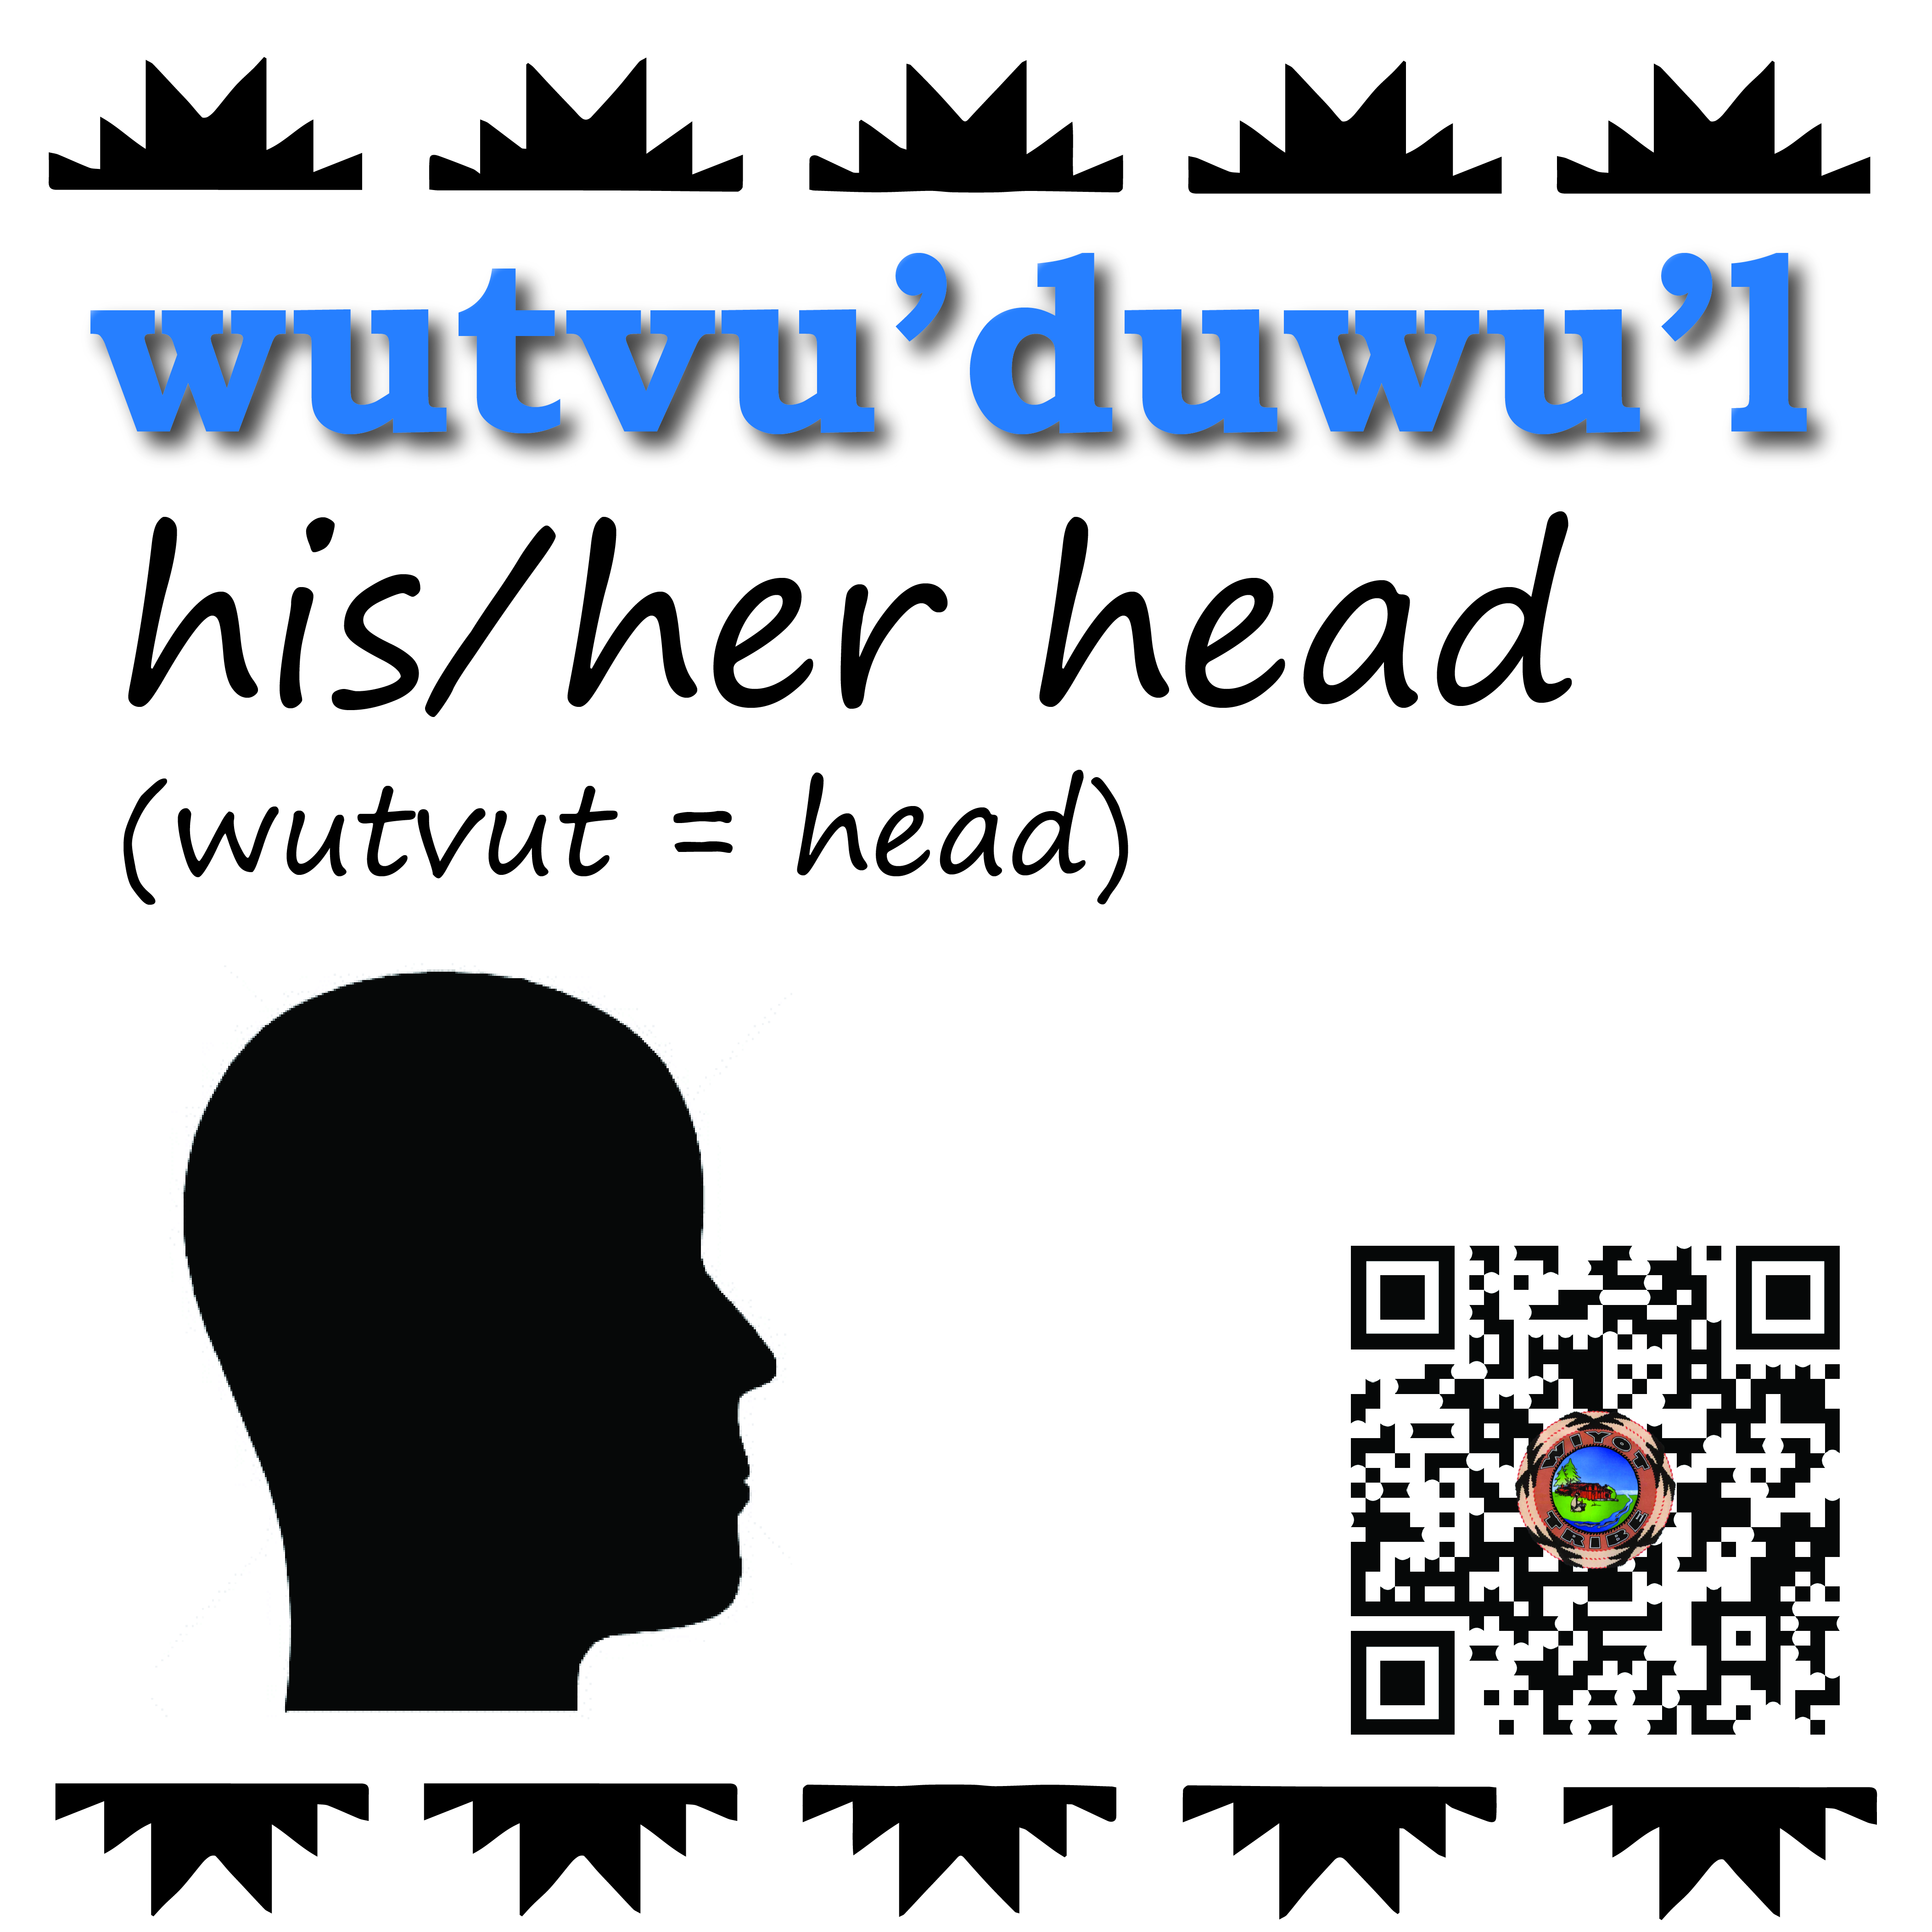 wutvuduwul_his_her_someones_head